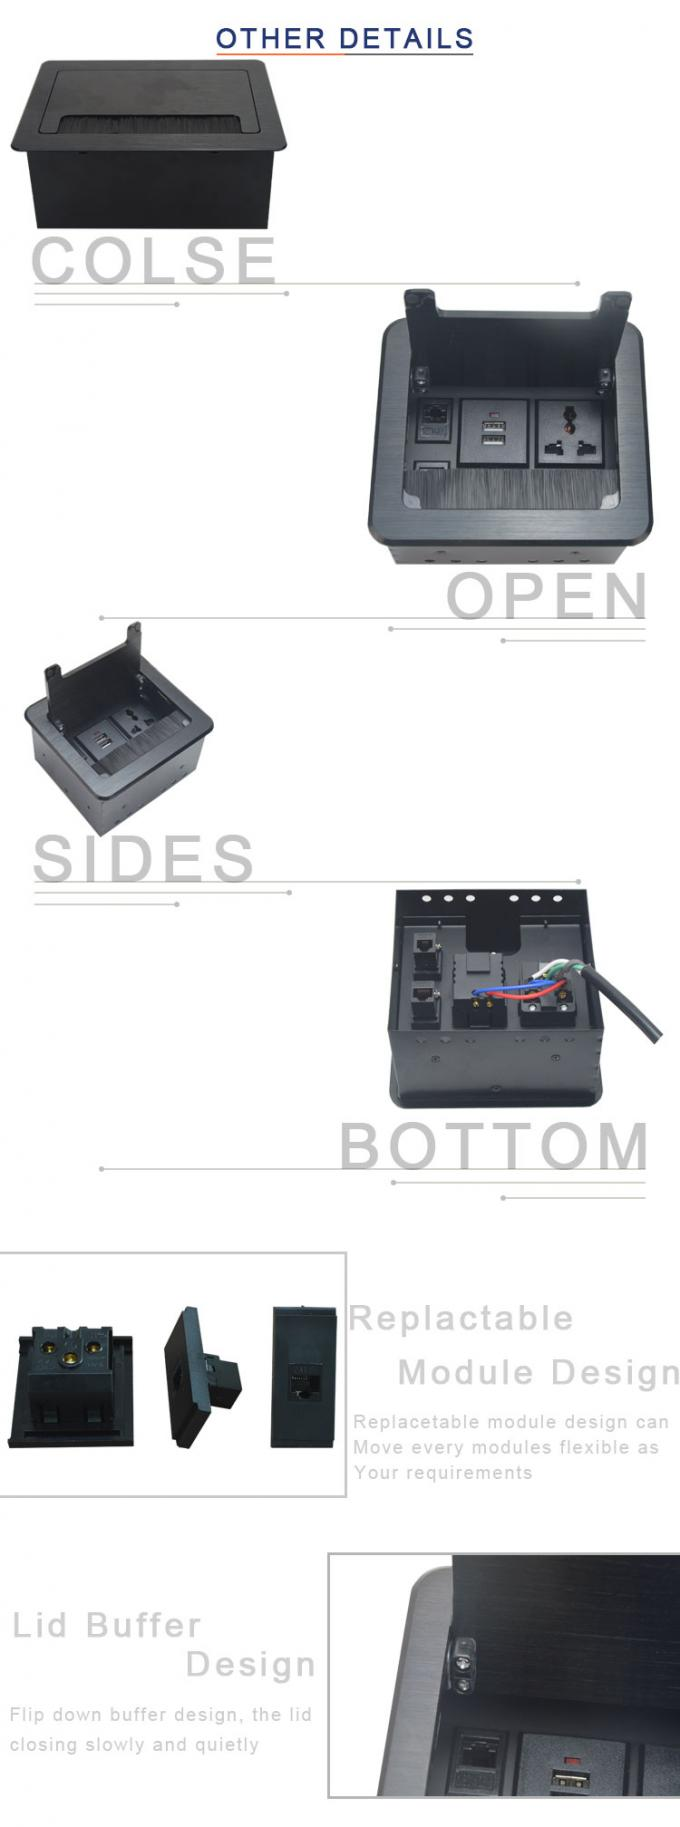 double usb charger interface desk flip up socket  BF407